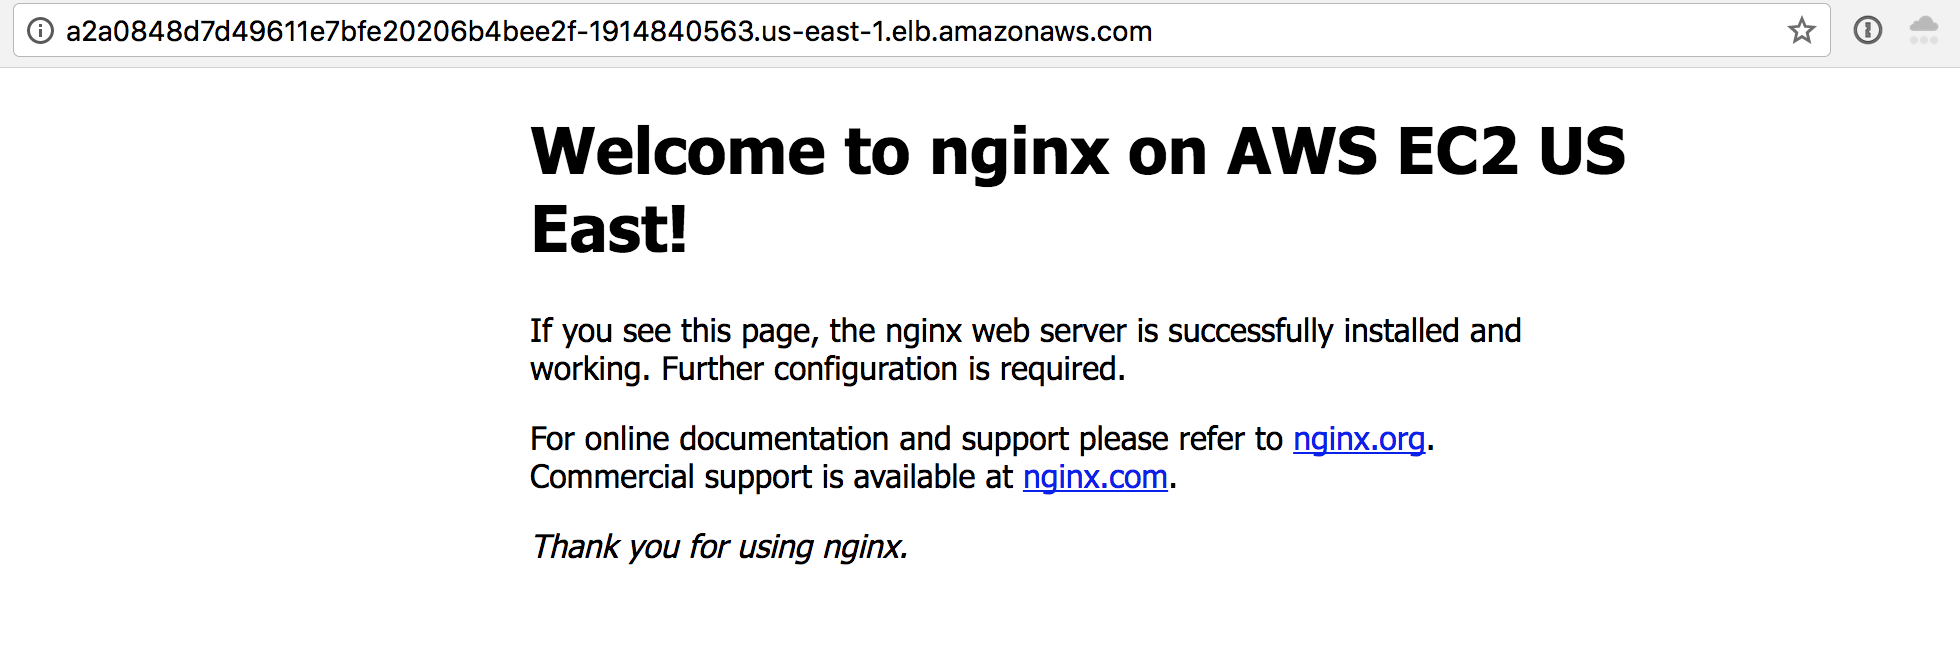 Old URL: https://support.cloudflare.com/hc/article_attachments/115003992152/Nginx_on_AWS.png Article IDs: 115003384591 | Using Kubernetes on GKE and AWS with Cloudflare Load Balancer